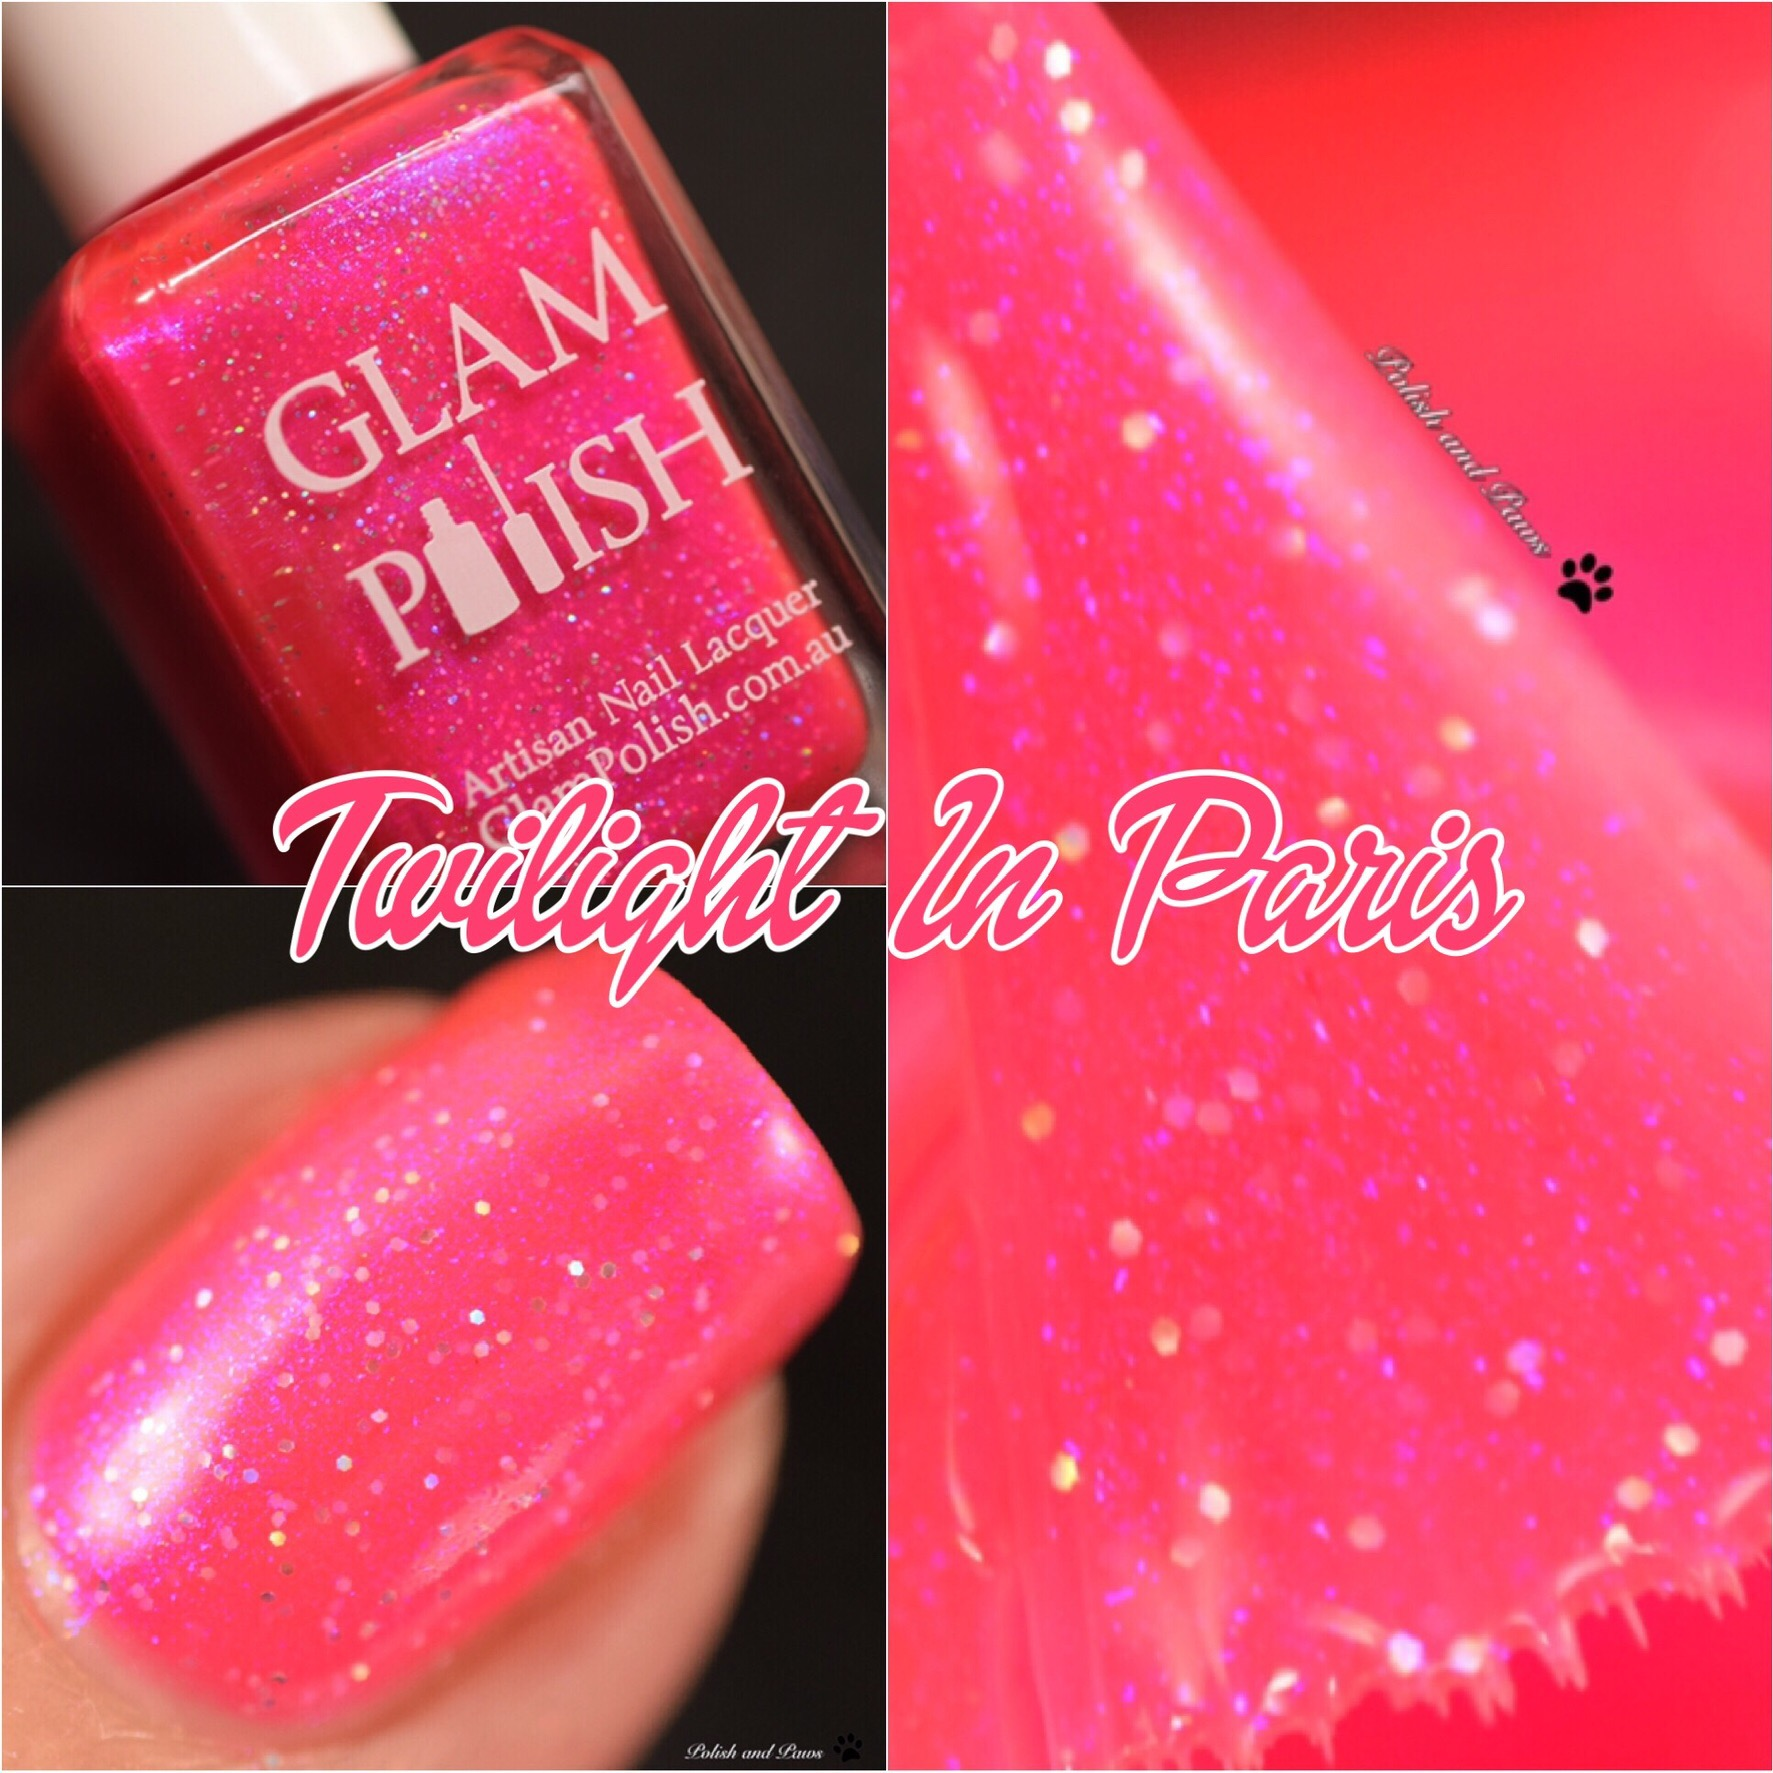 Glam Polish Twilight in Paris